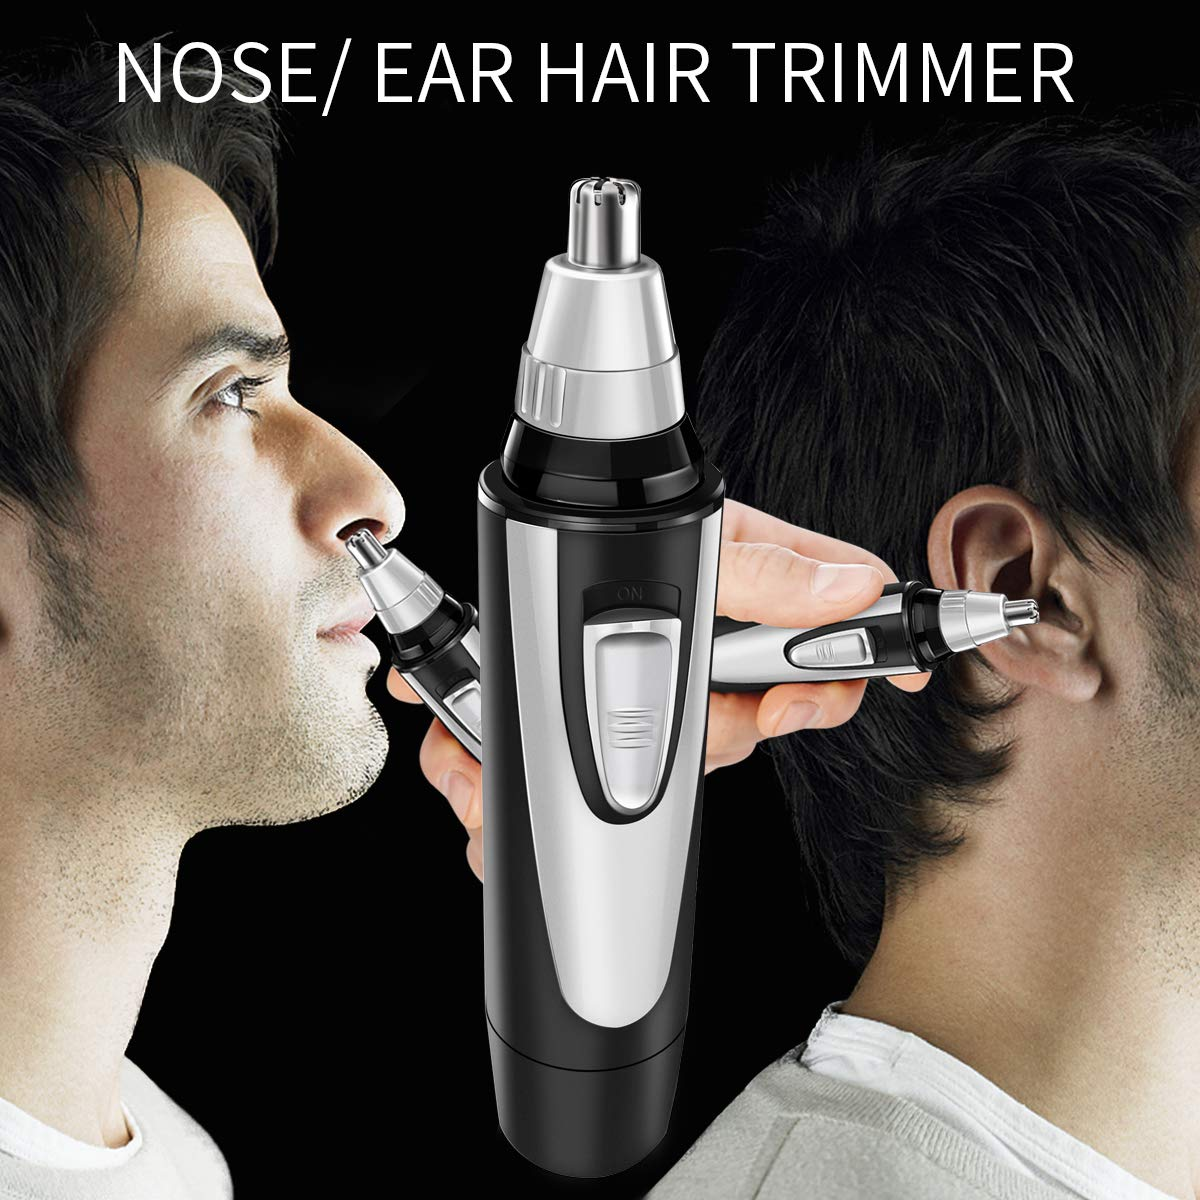 Nose Ear Hair Trimmer for Men Women, Electric Nostril Nasal Hair Clippers Trimmers Remover, Vacuum Cleaning System, IPX7 Waterproof, Mute Motor, Wet/Dry, Battery-Operated